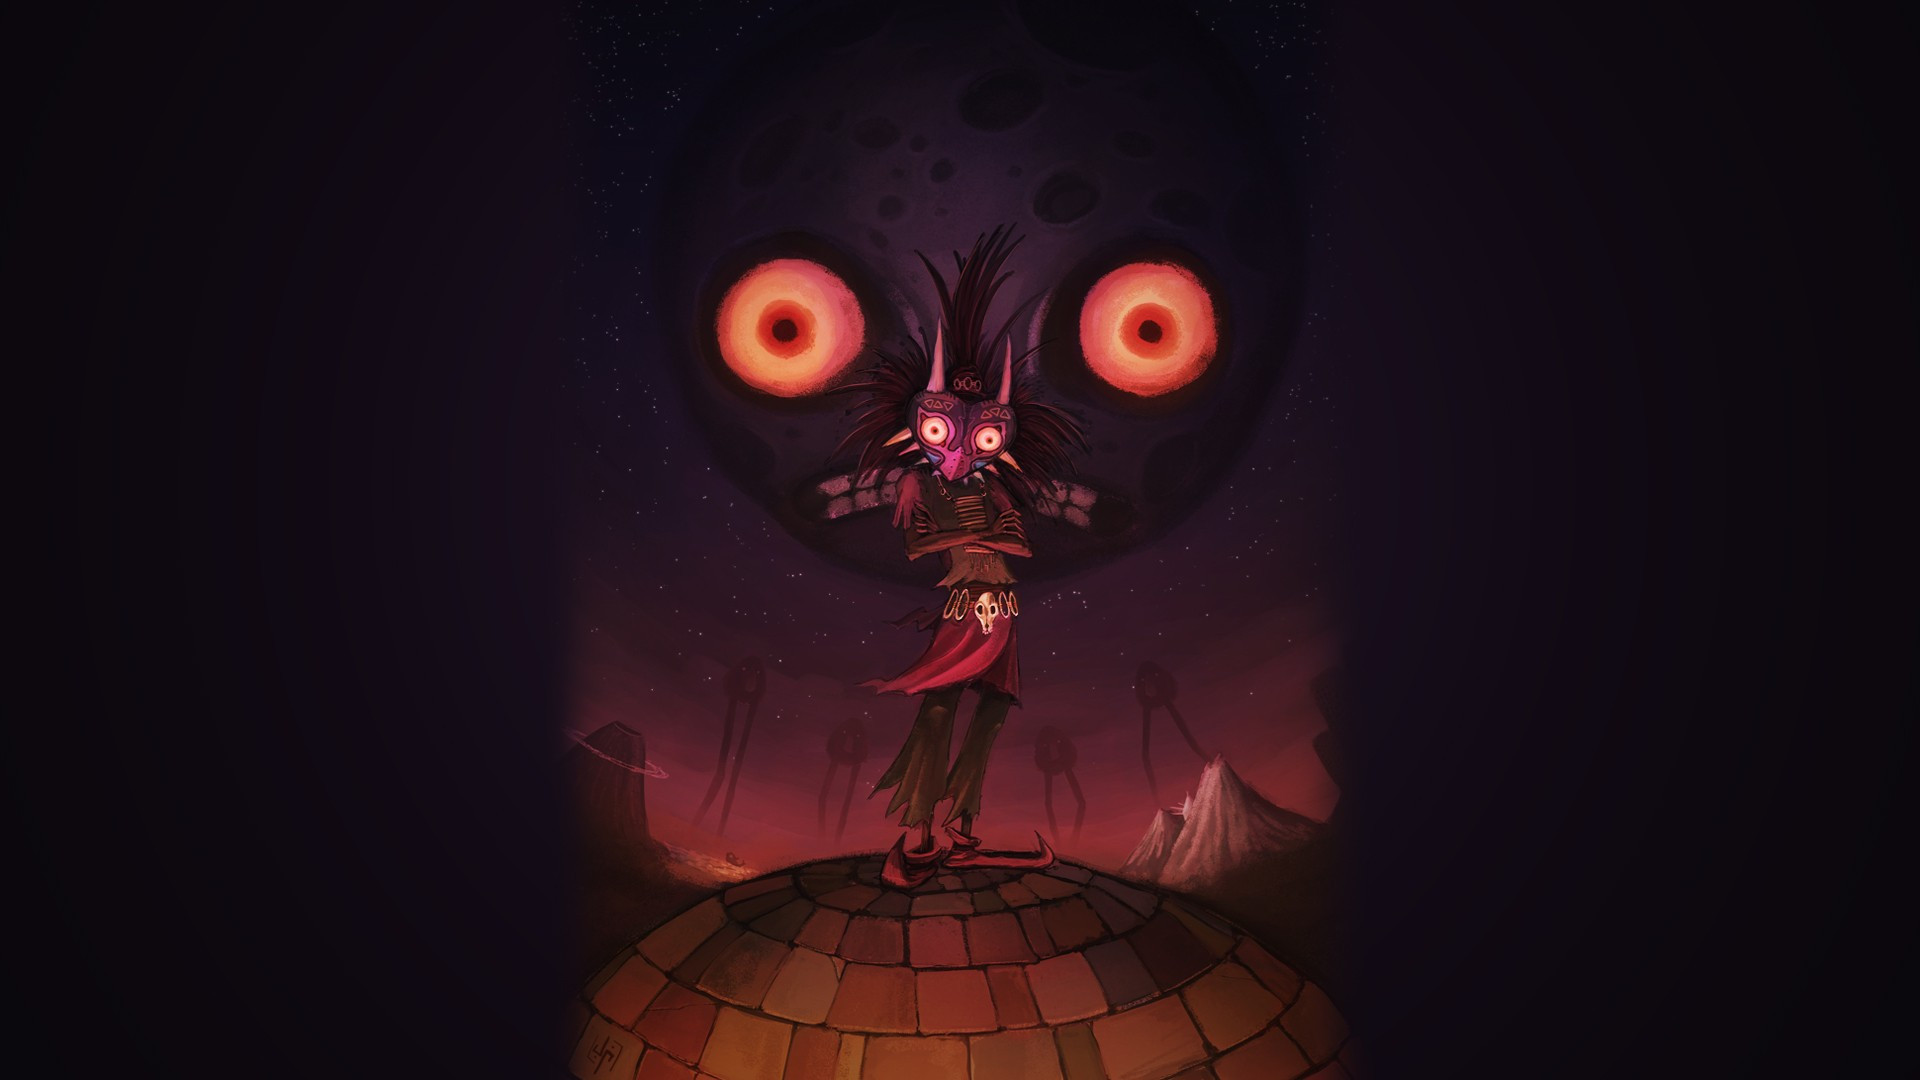 Skull Kid Wallpaper: Zelda Majora's Mask Skull Kid Fantasy Wallpaper